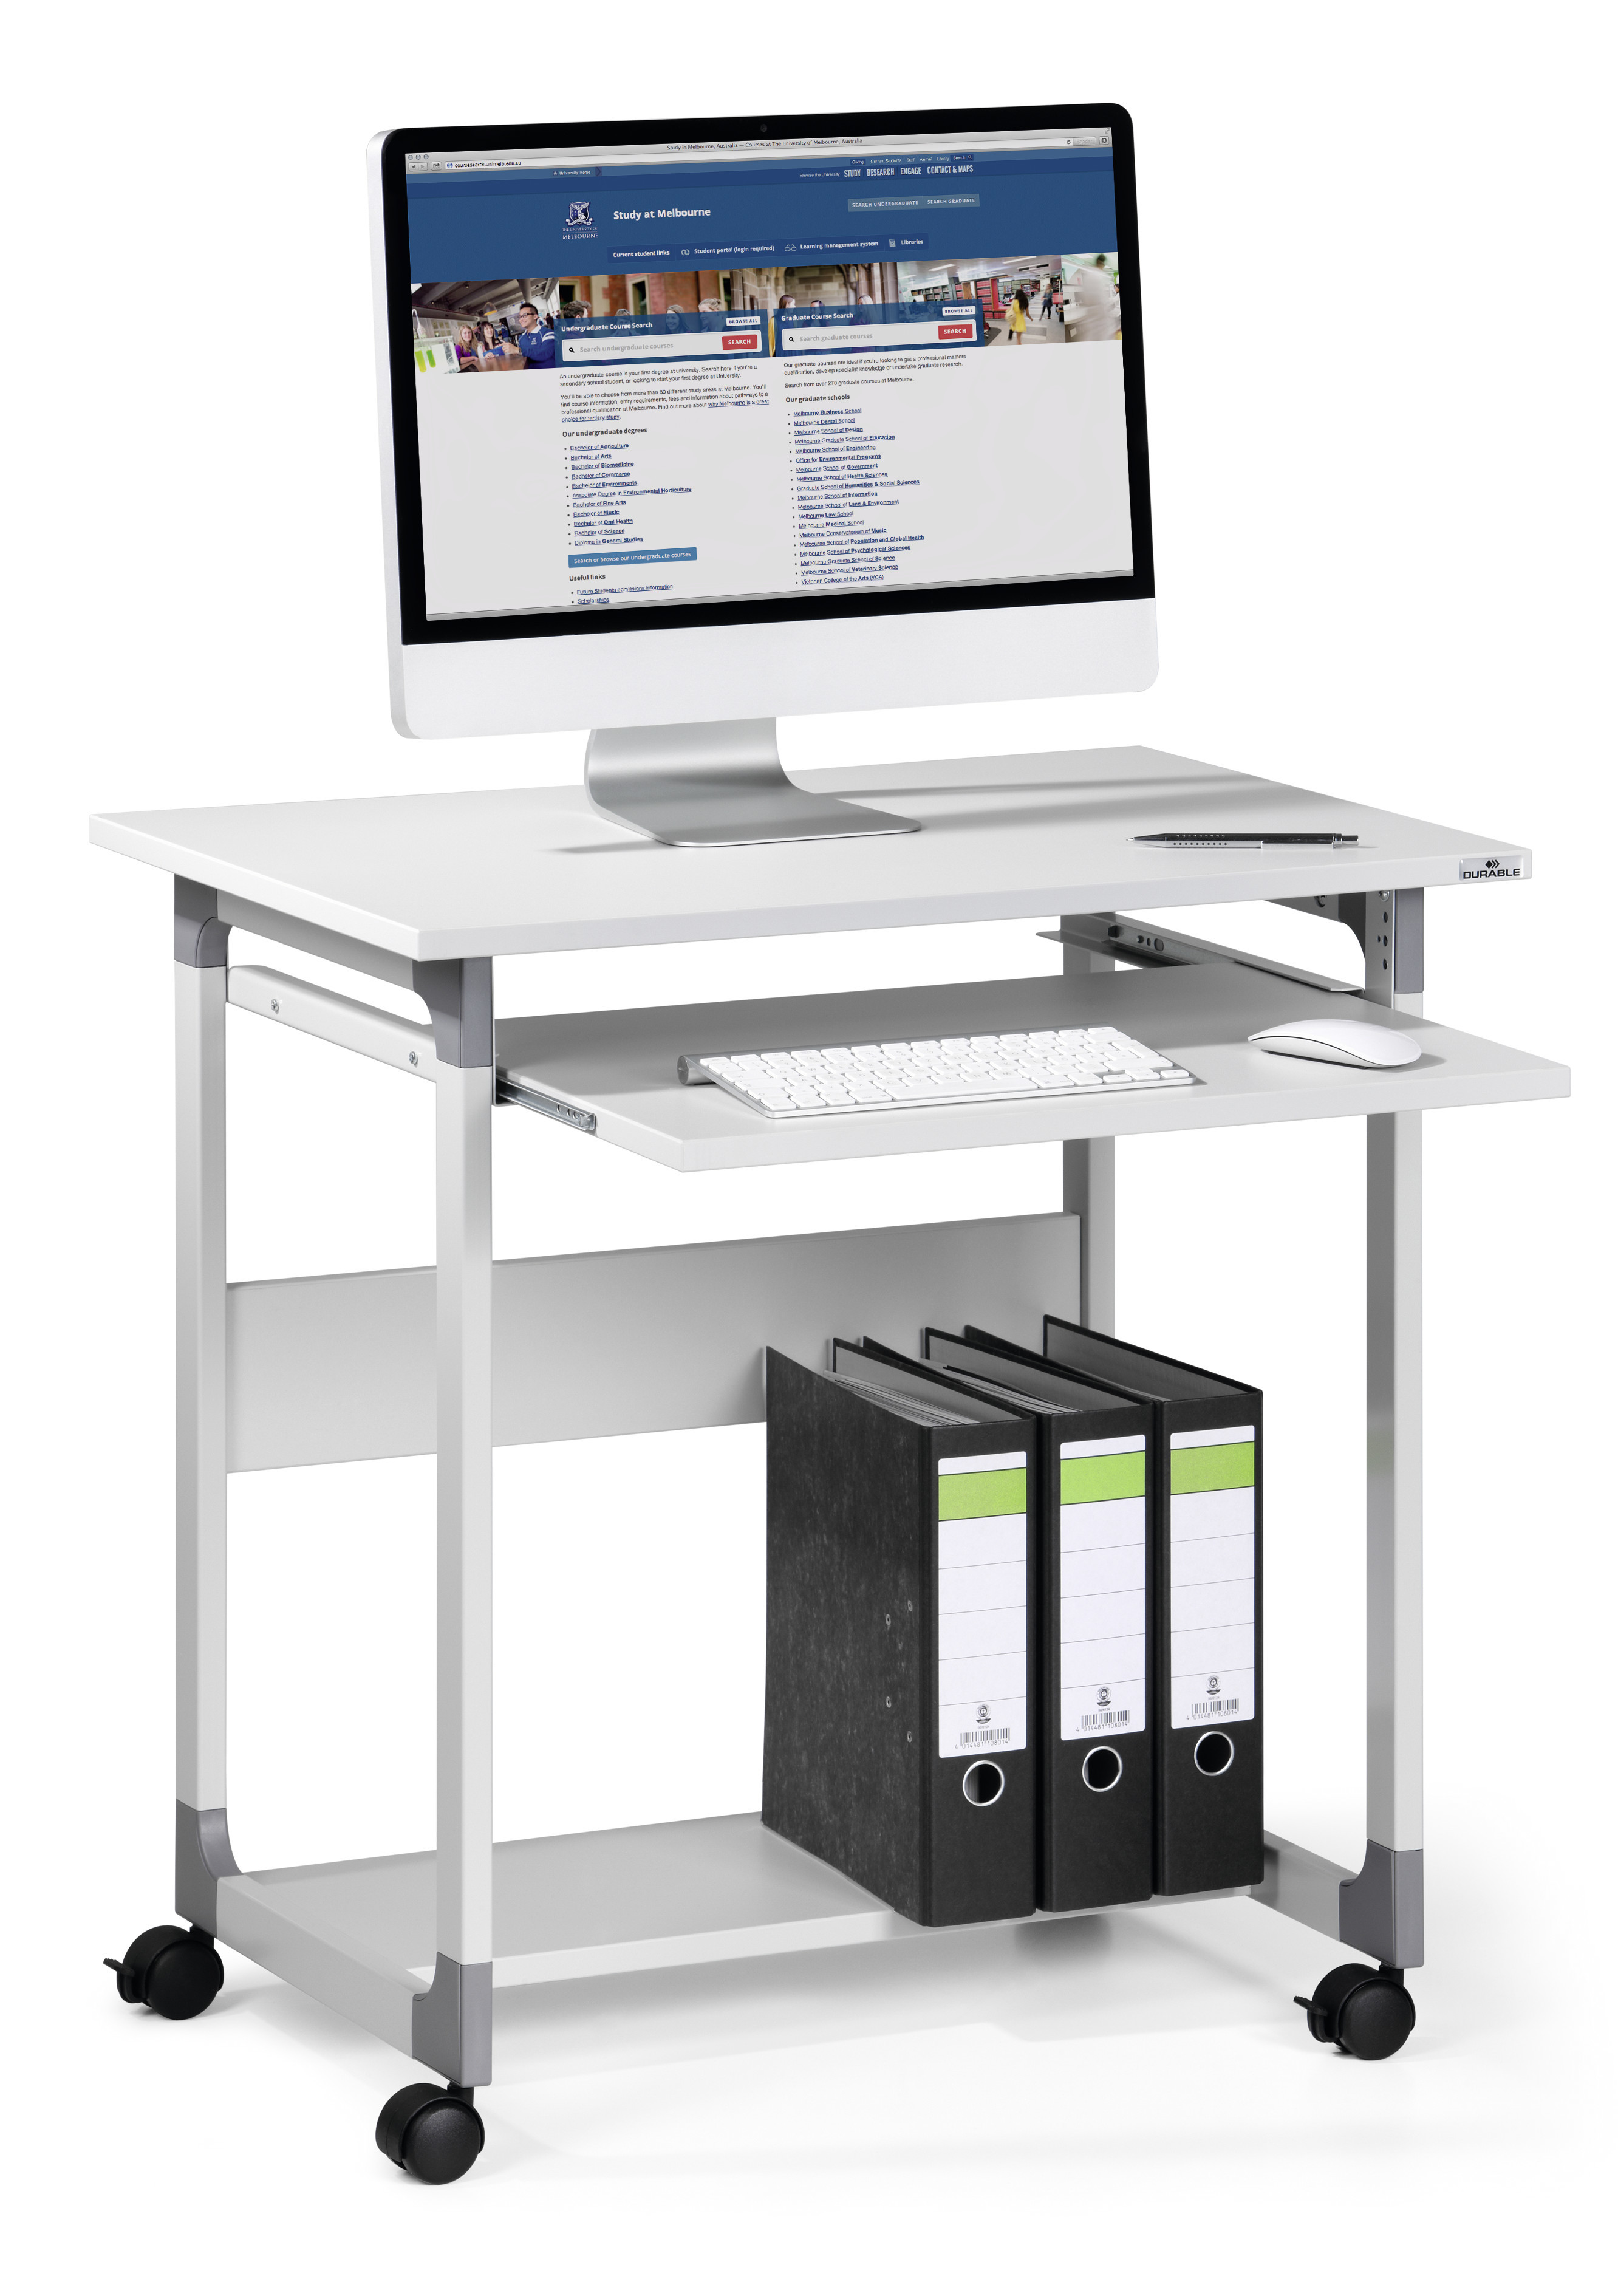 DURABLE SYSTEM COMPUTER TROLLEY 75 FH 1 ST Z379699